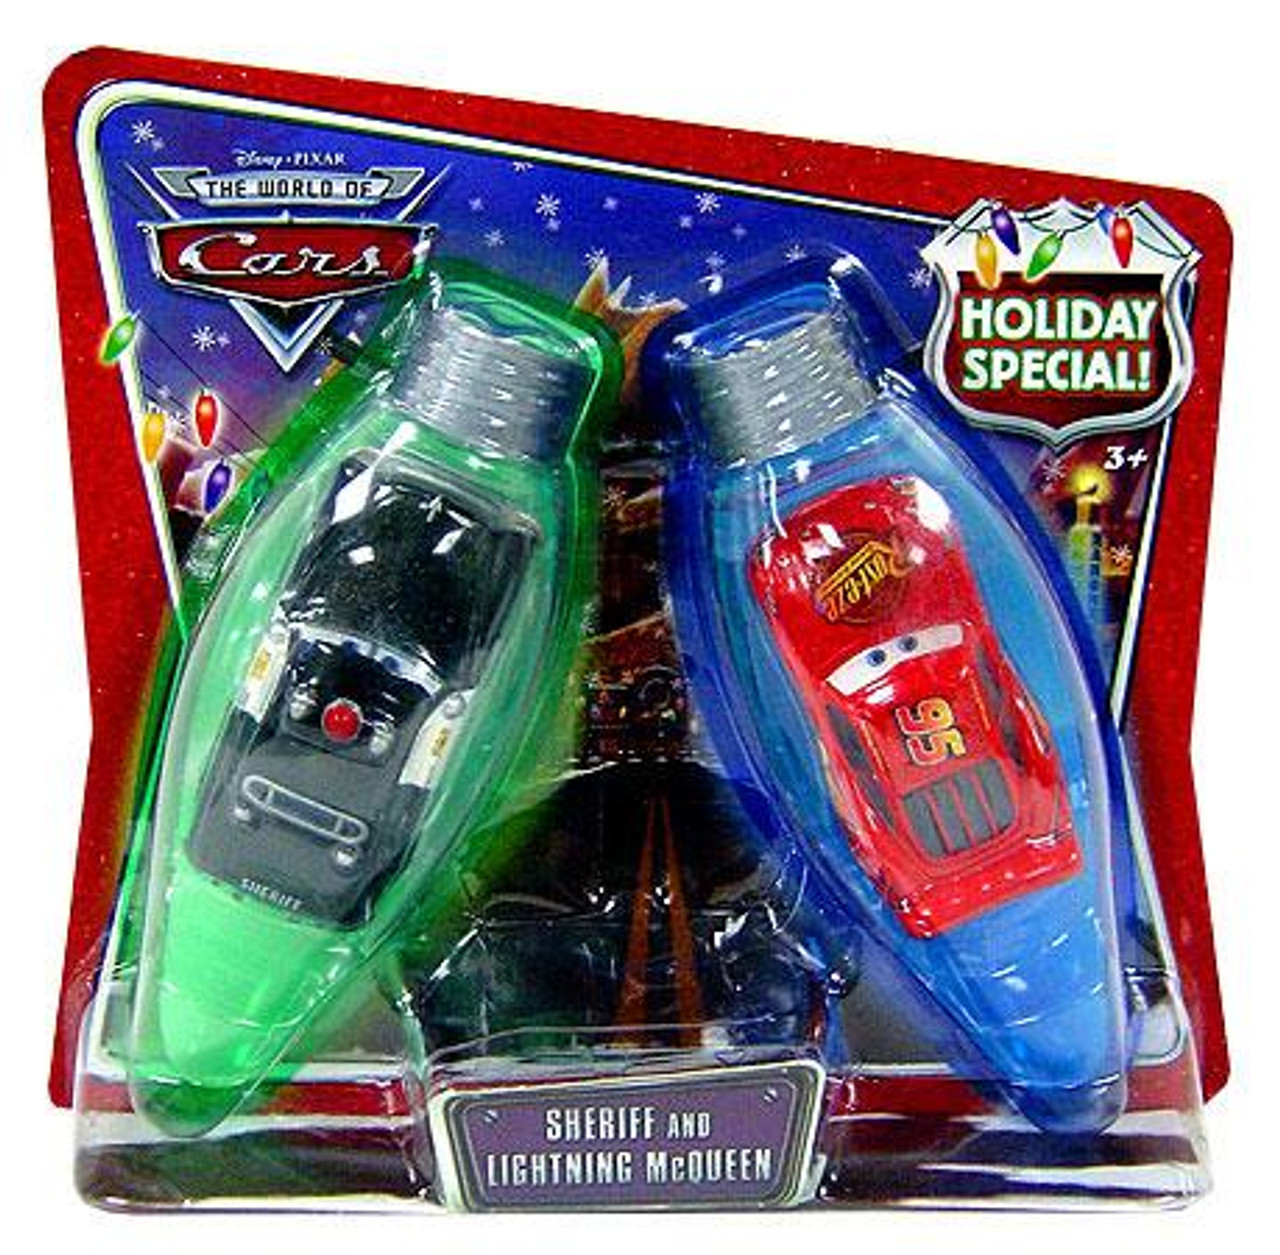 Disney Cars The World of Cars Sheriff & Lightning McQueen Holiday Special Diecast Car 2-Pack